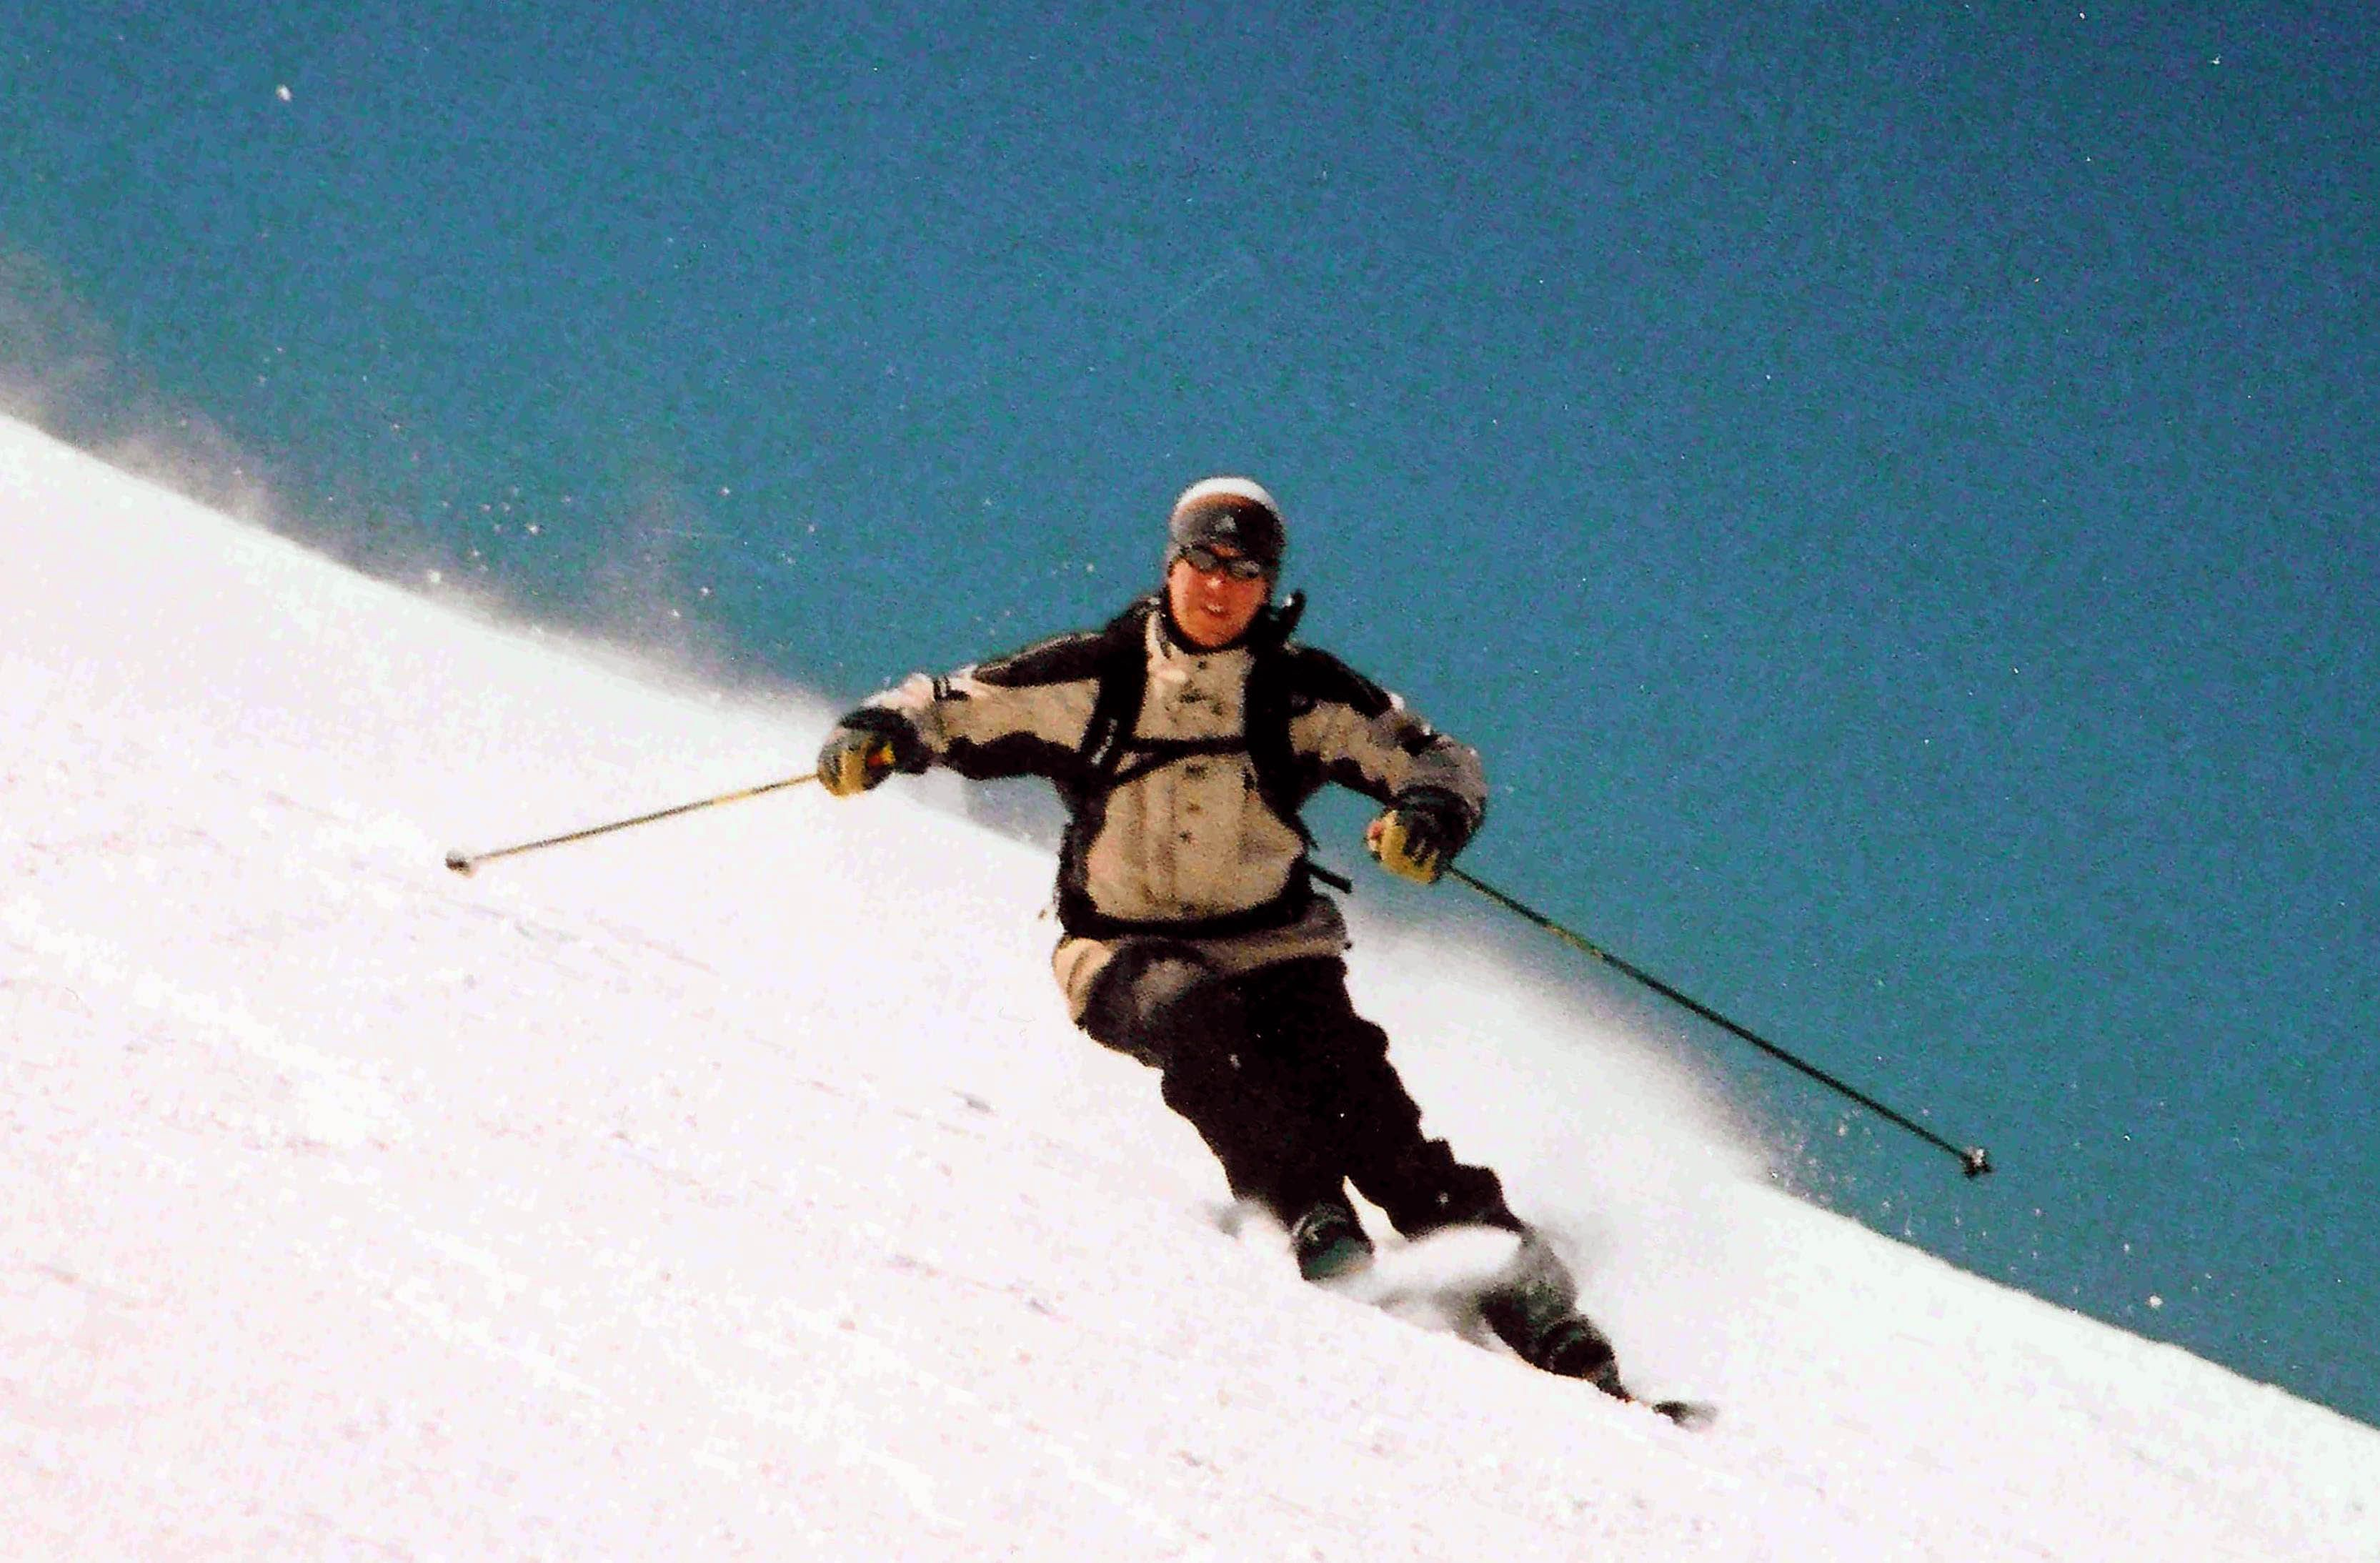 Skier-carving-a-turn